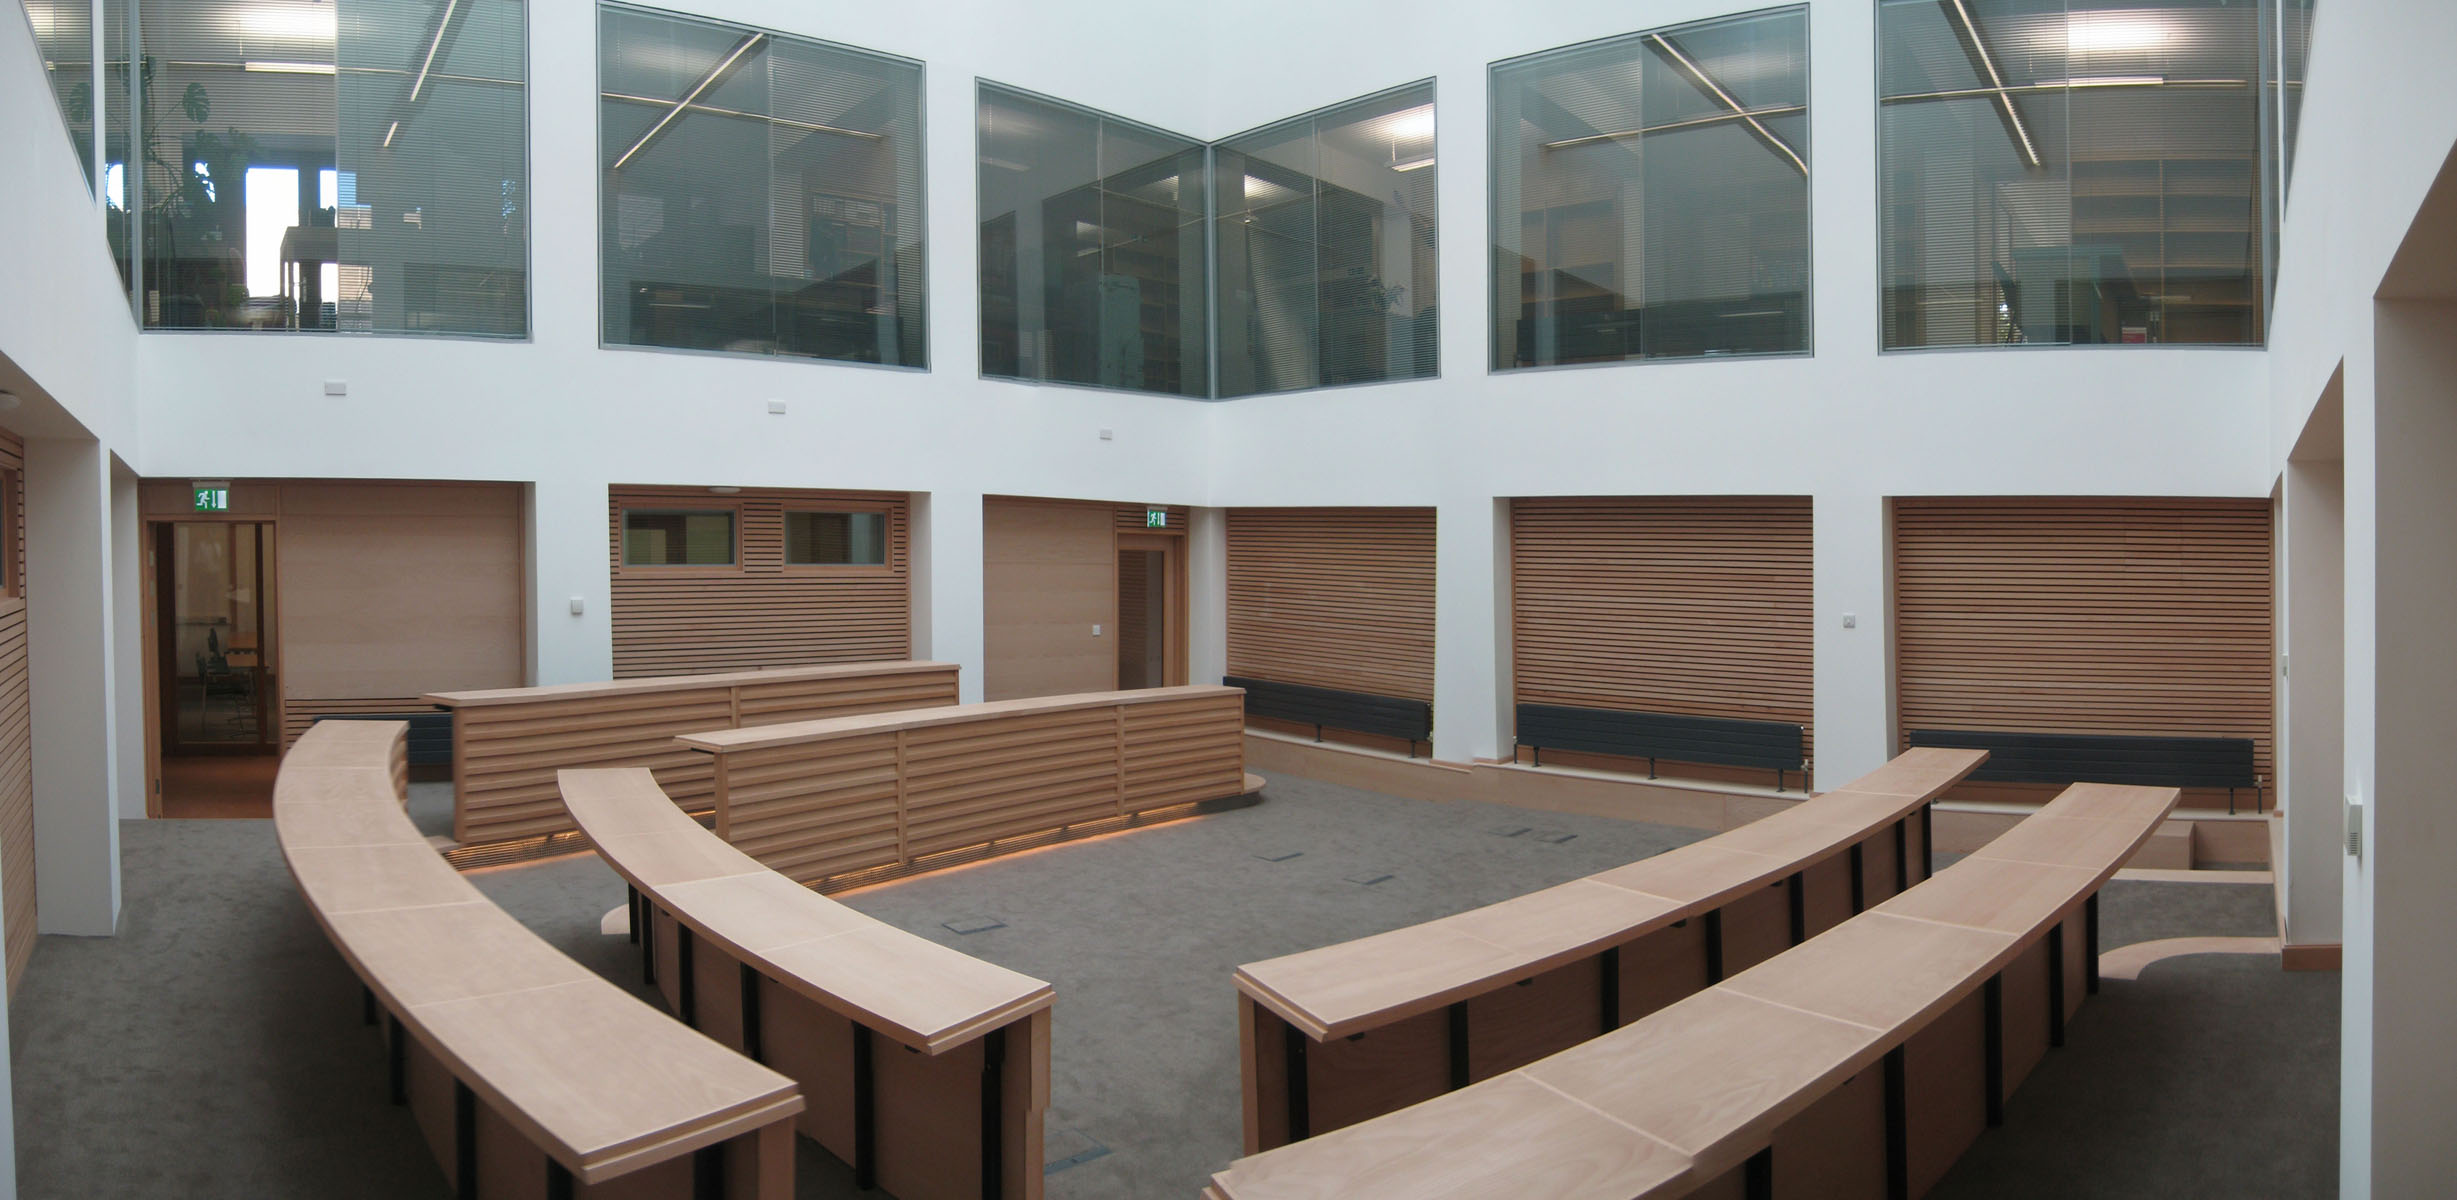 St Cross Building, Moot Hall, Pringle Richards Sharratt Architects